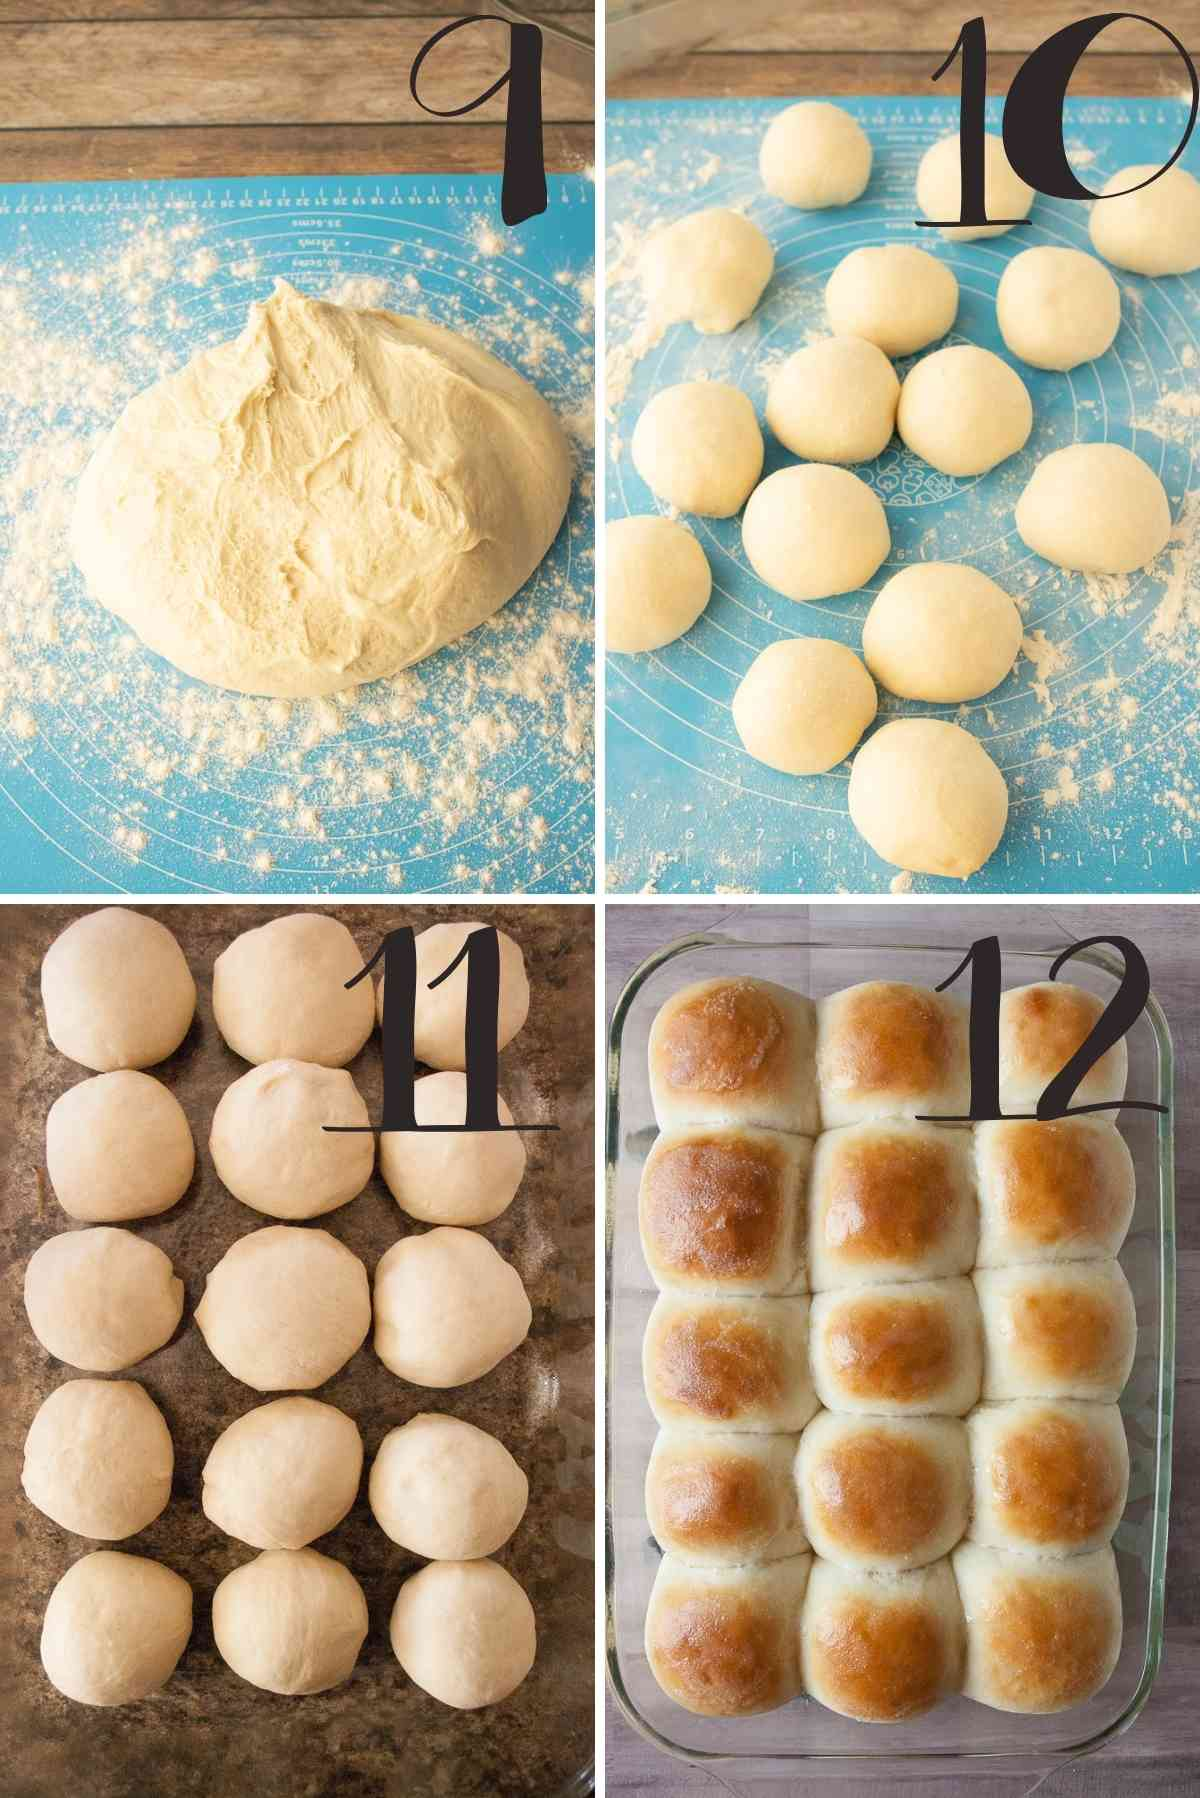 Dough dumped out, divided into pieces, shaped, placed on a pan and baked.